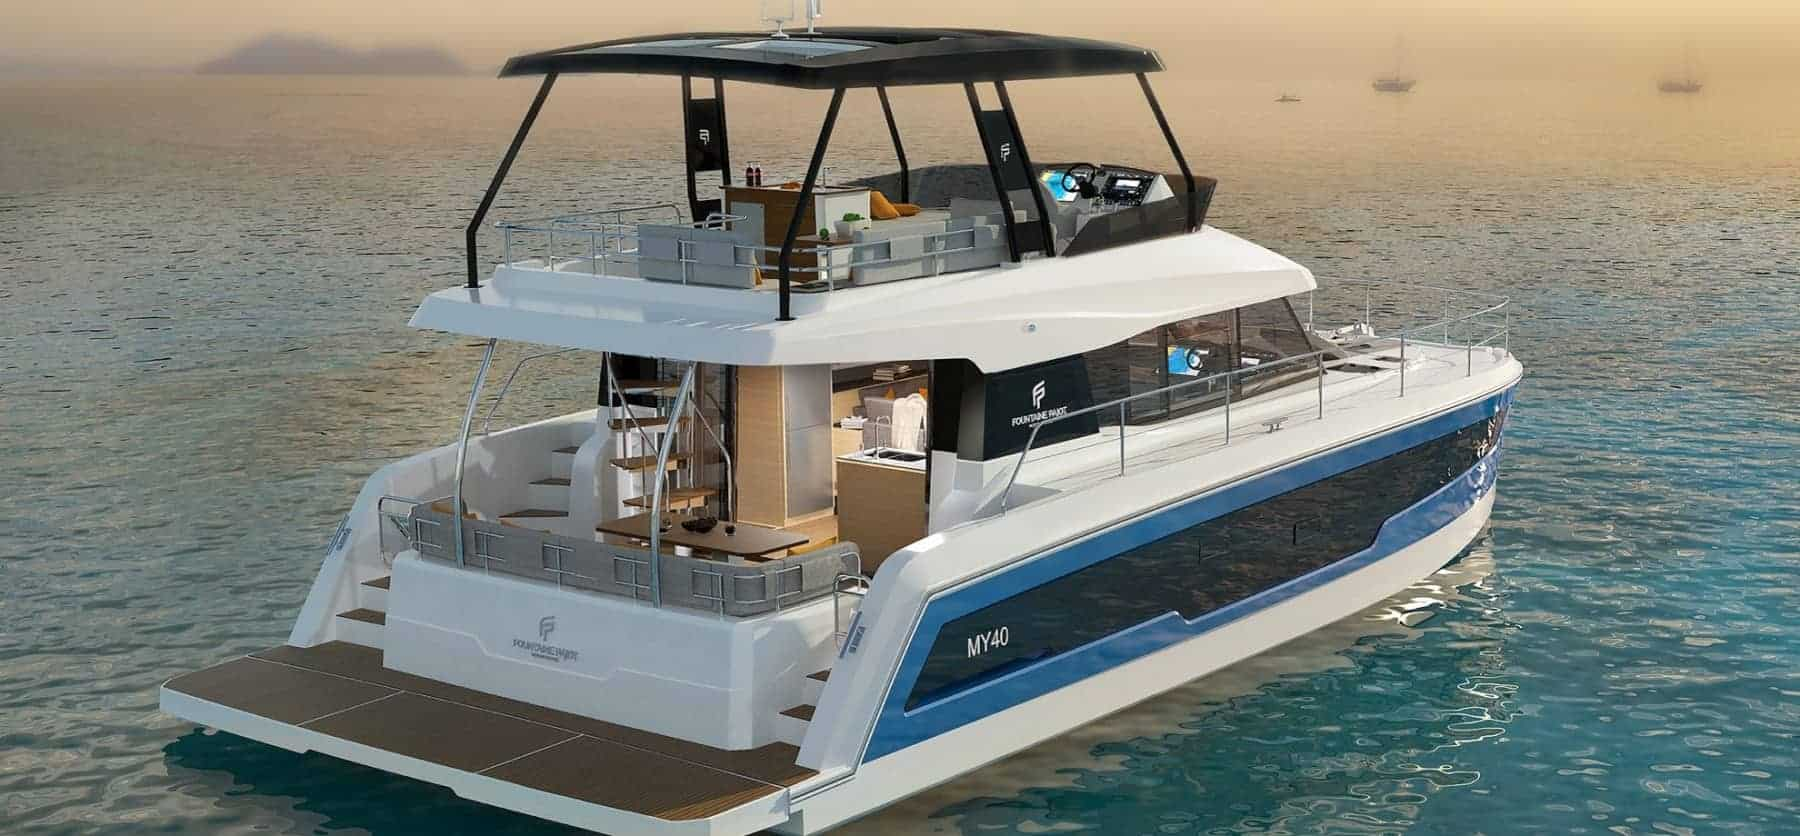 anchored Fountaine Pajot Motor yacht 40 floating calmly in still, blue water